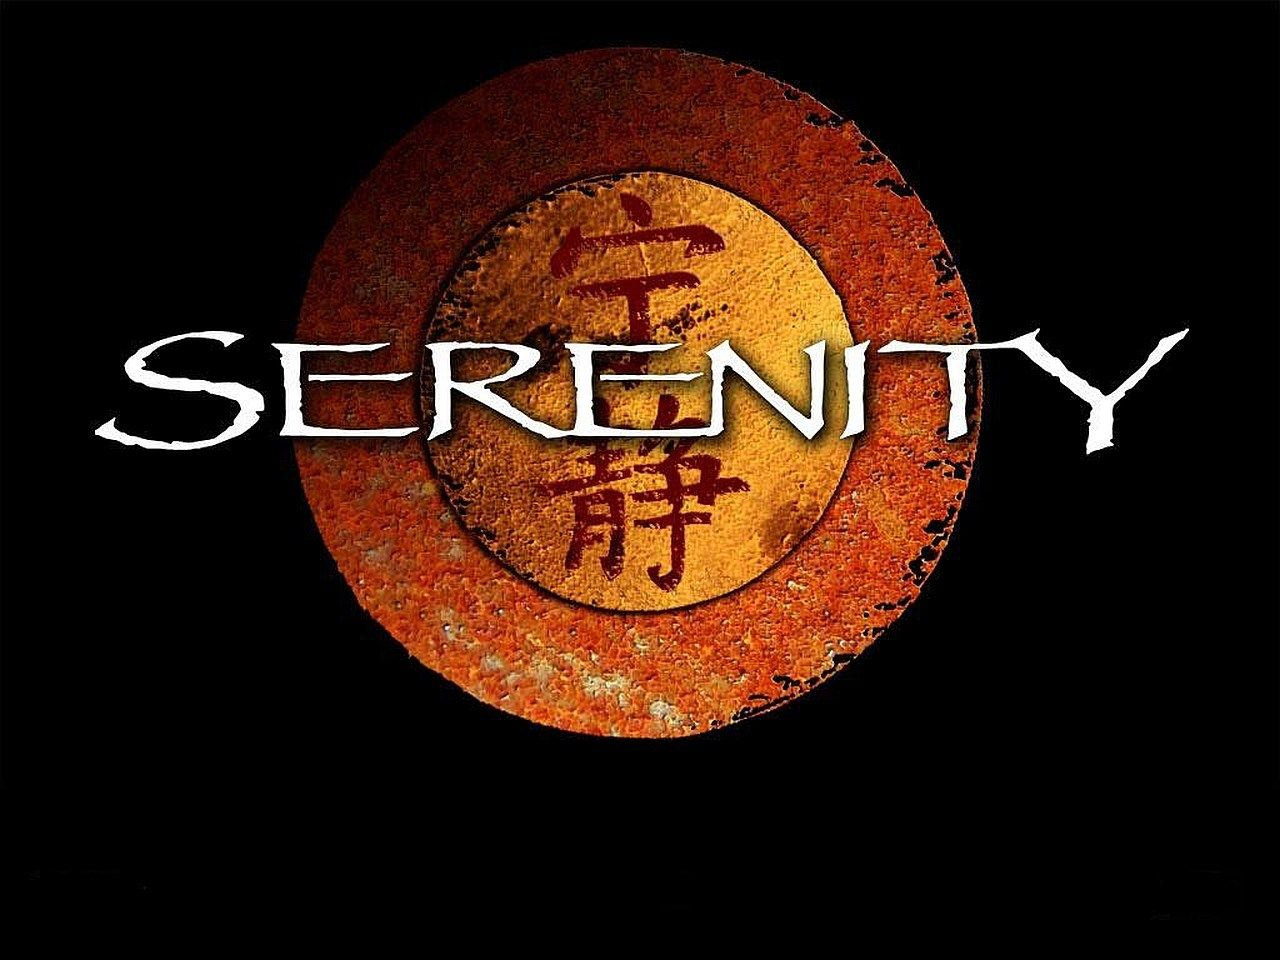 Wallpaper Images Serenity Hoyt Black 2017 03 10 Serenity High Resolution Wallpapers Resolutions